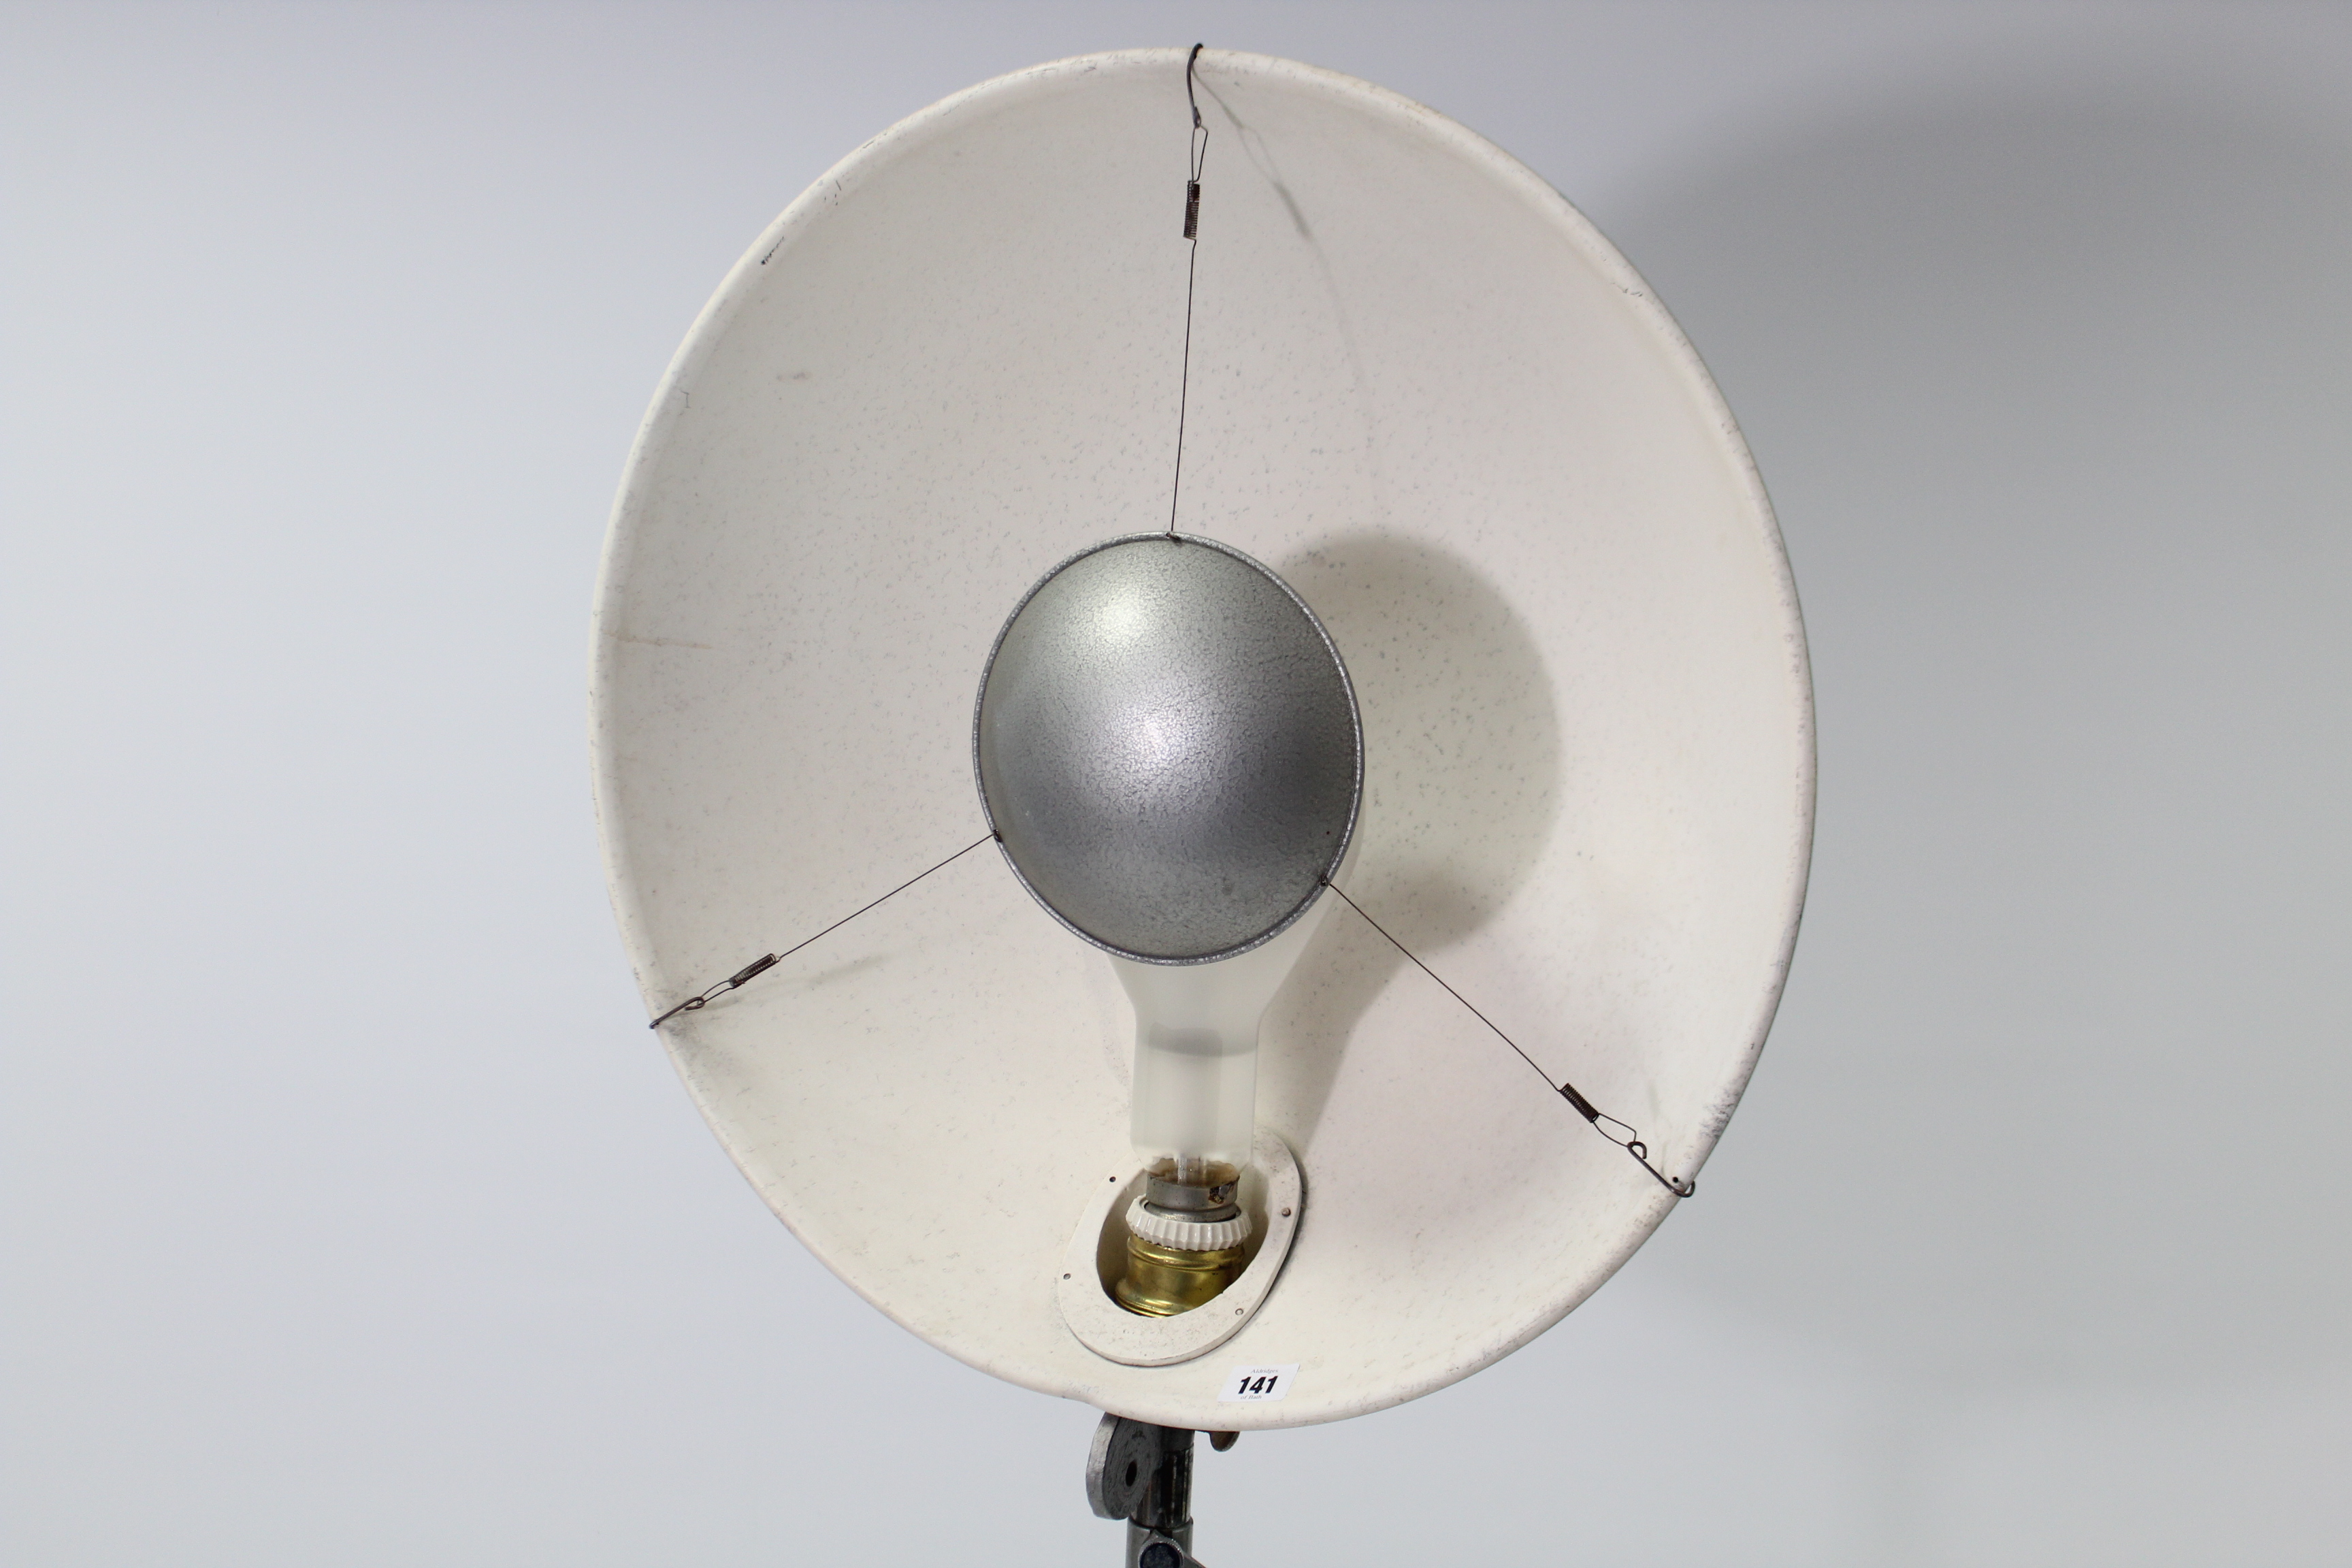 Lot 141 - A Malham photography lamp on triform stand.